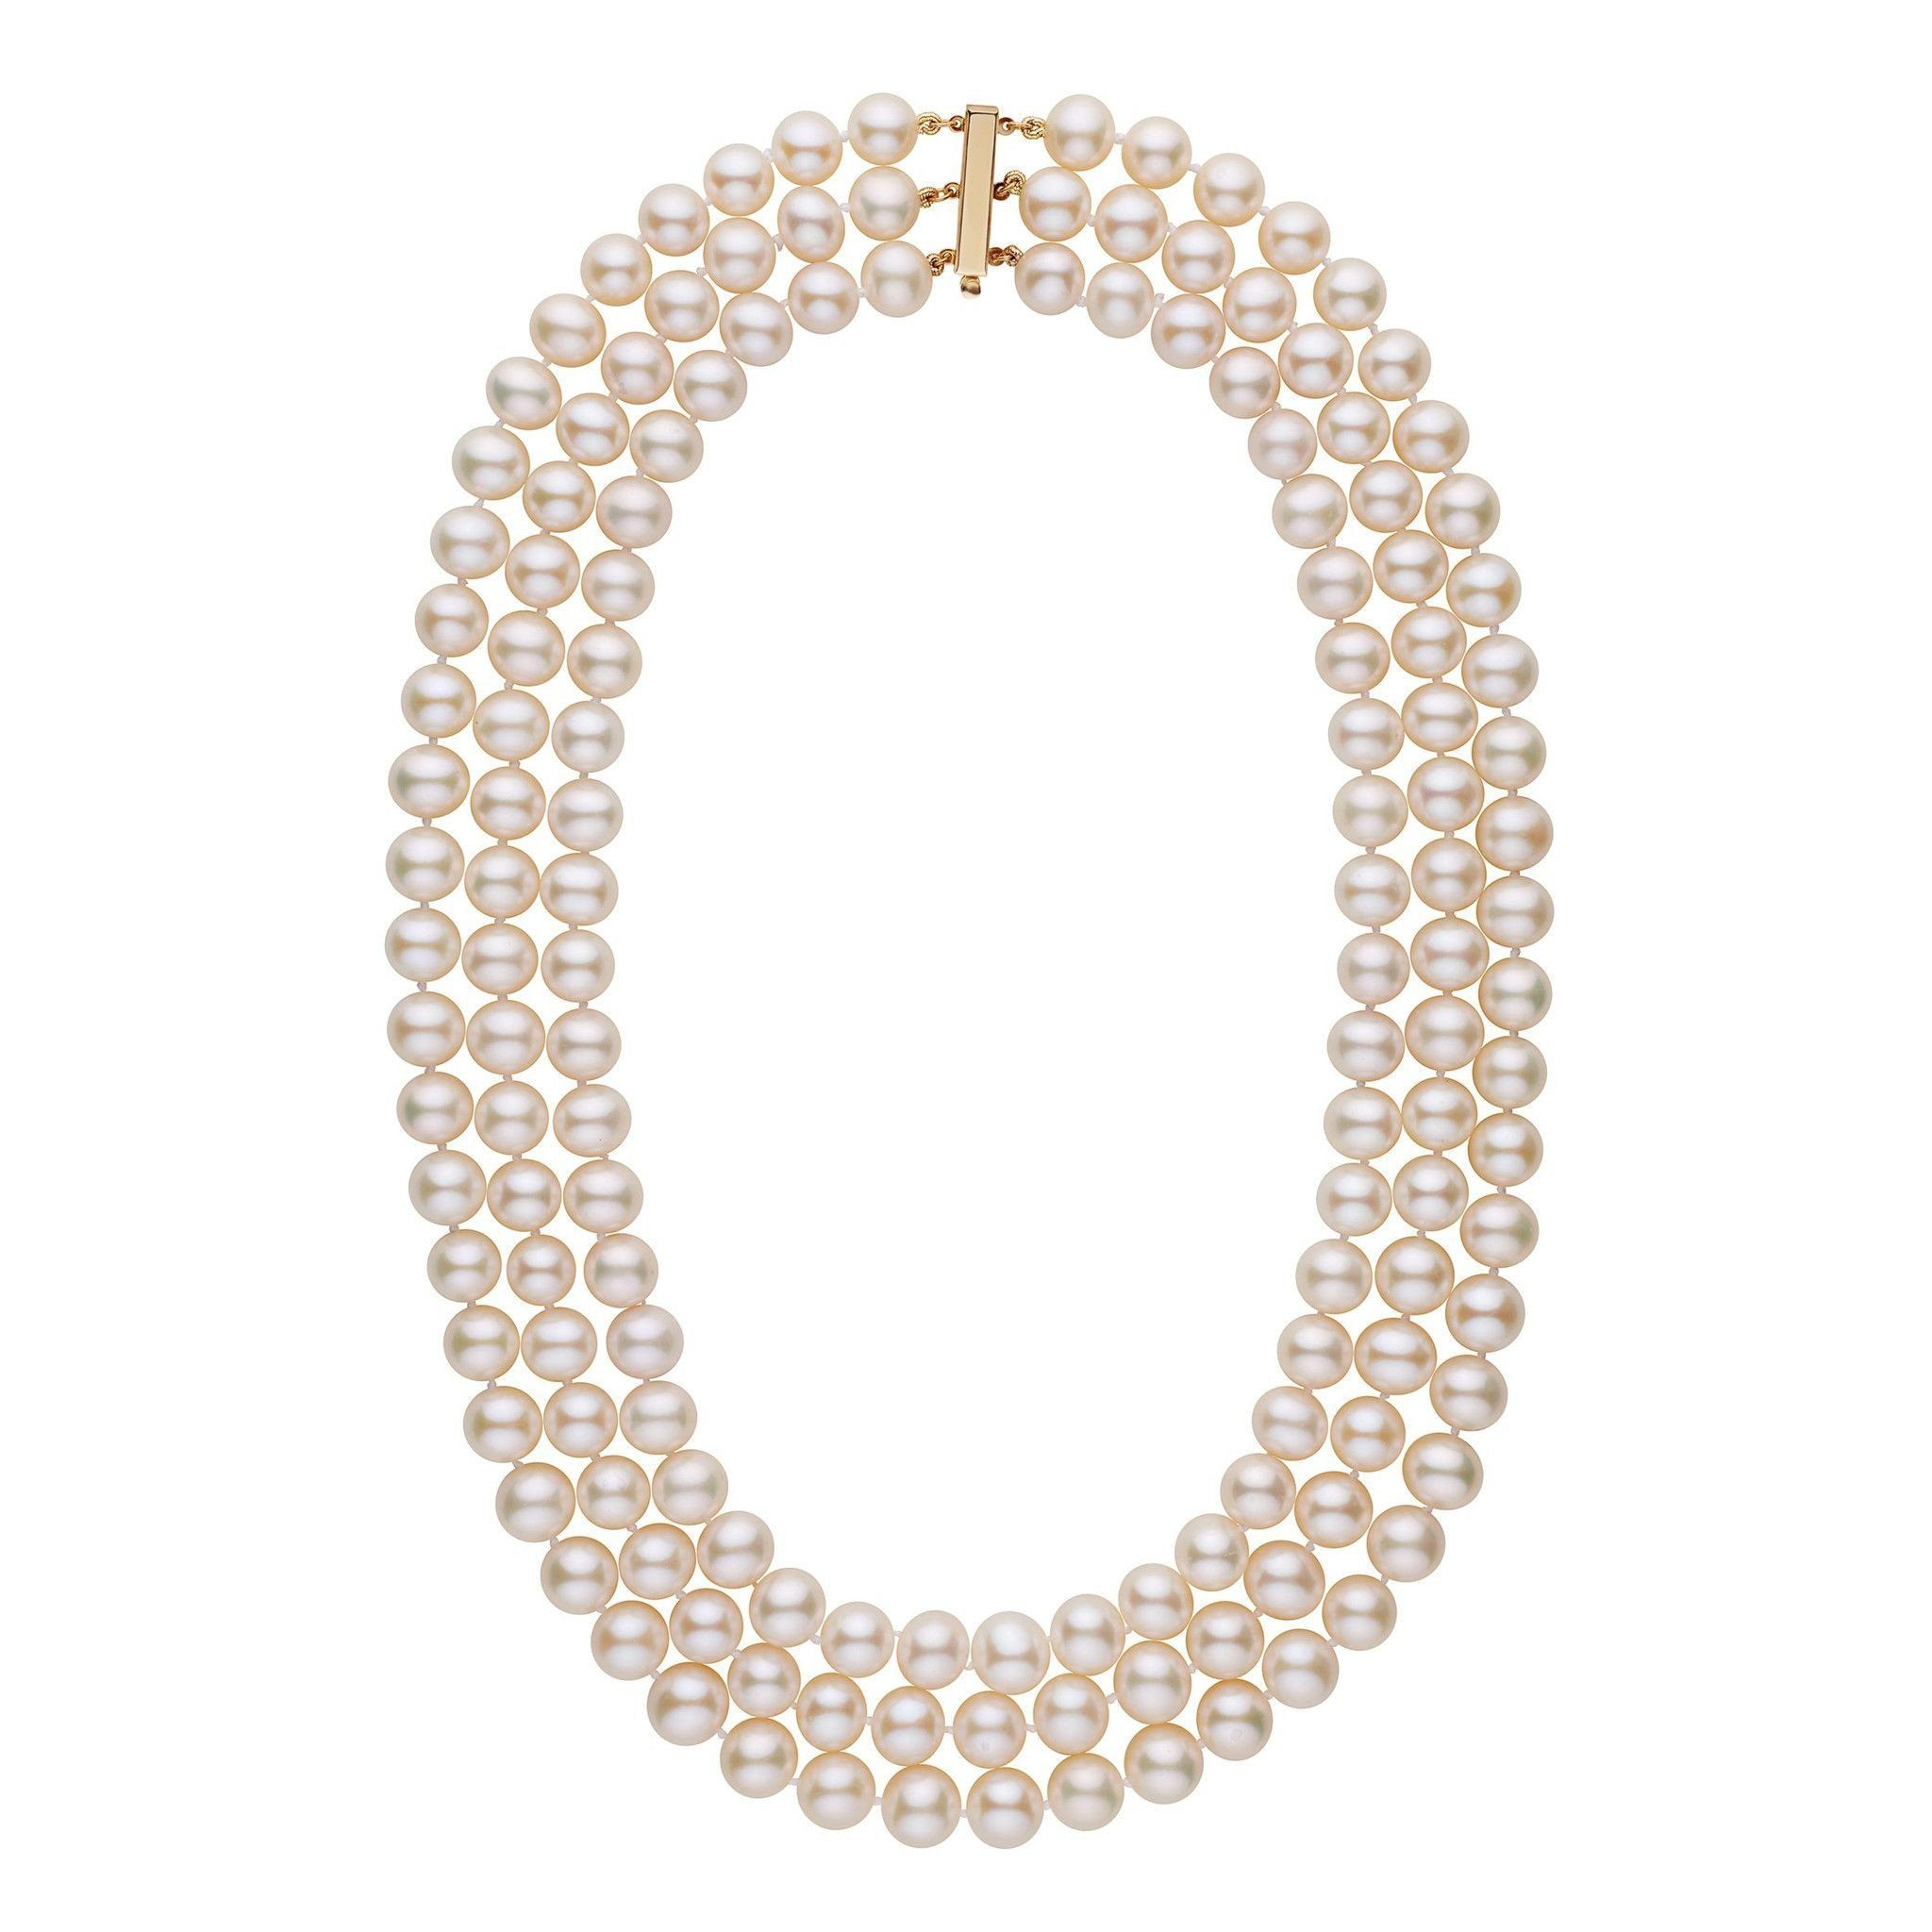 7.5-8.0 mm Triple-Strand AAA White Freshwater Cultured Pearl Necklace